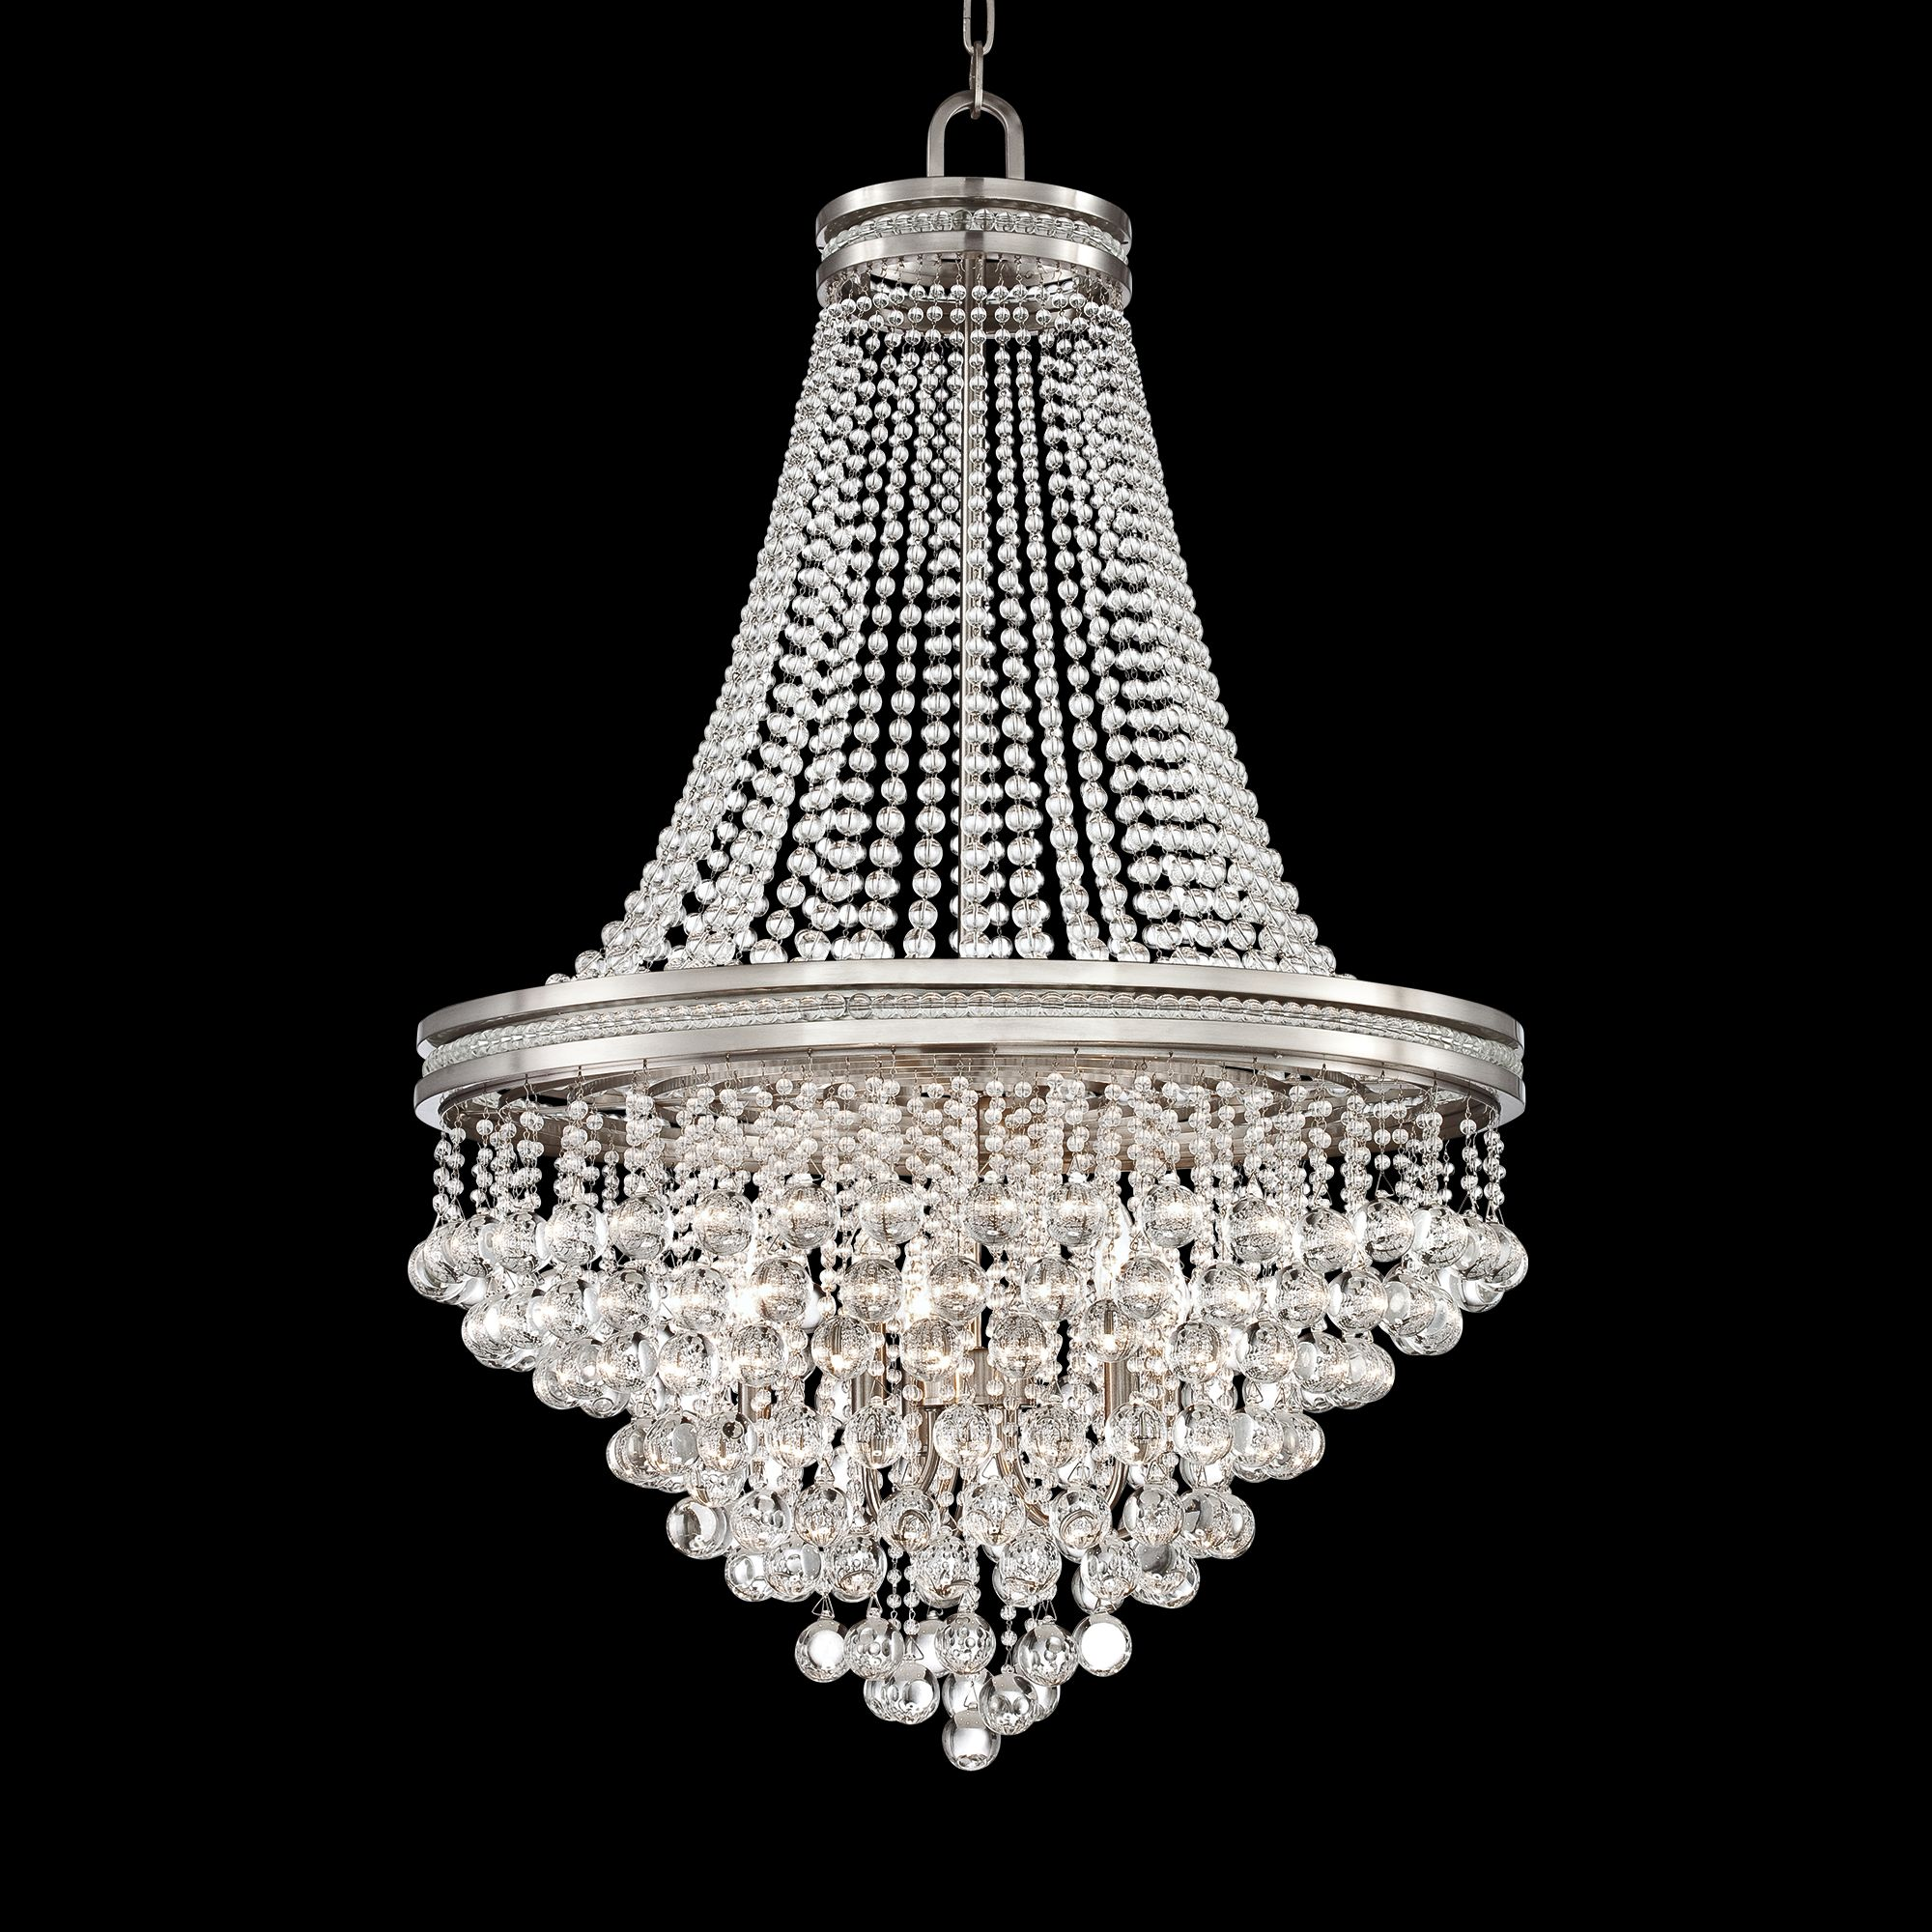 Chandeliers to mesmerize the ambience